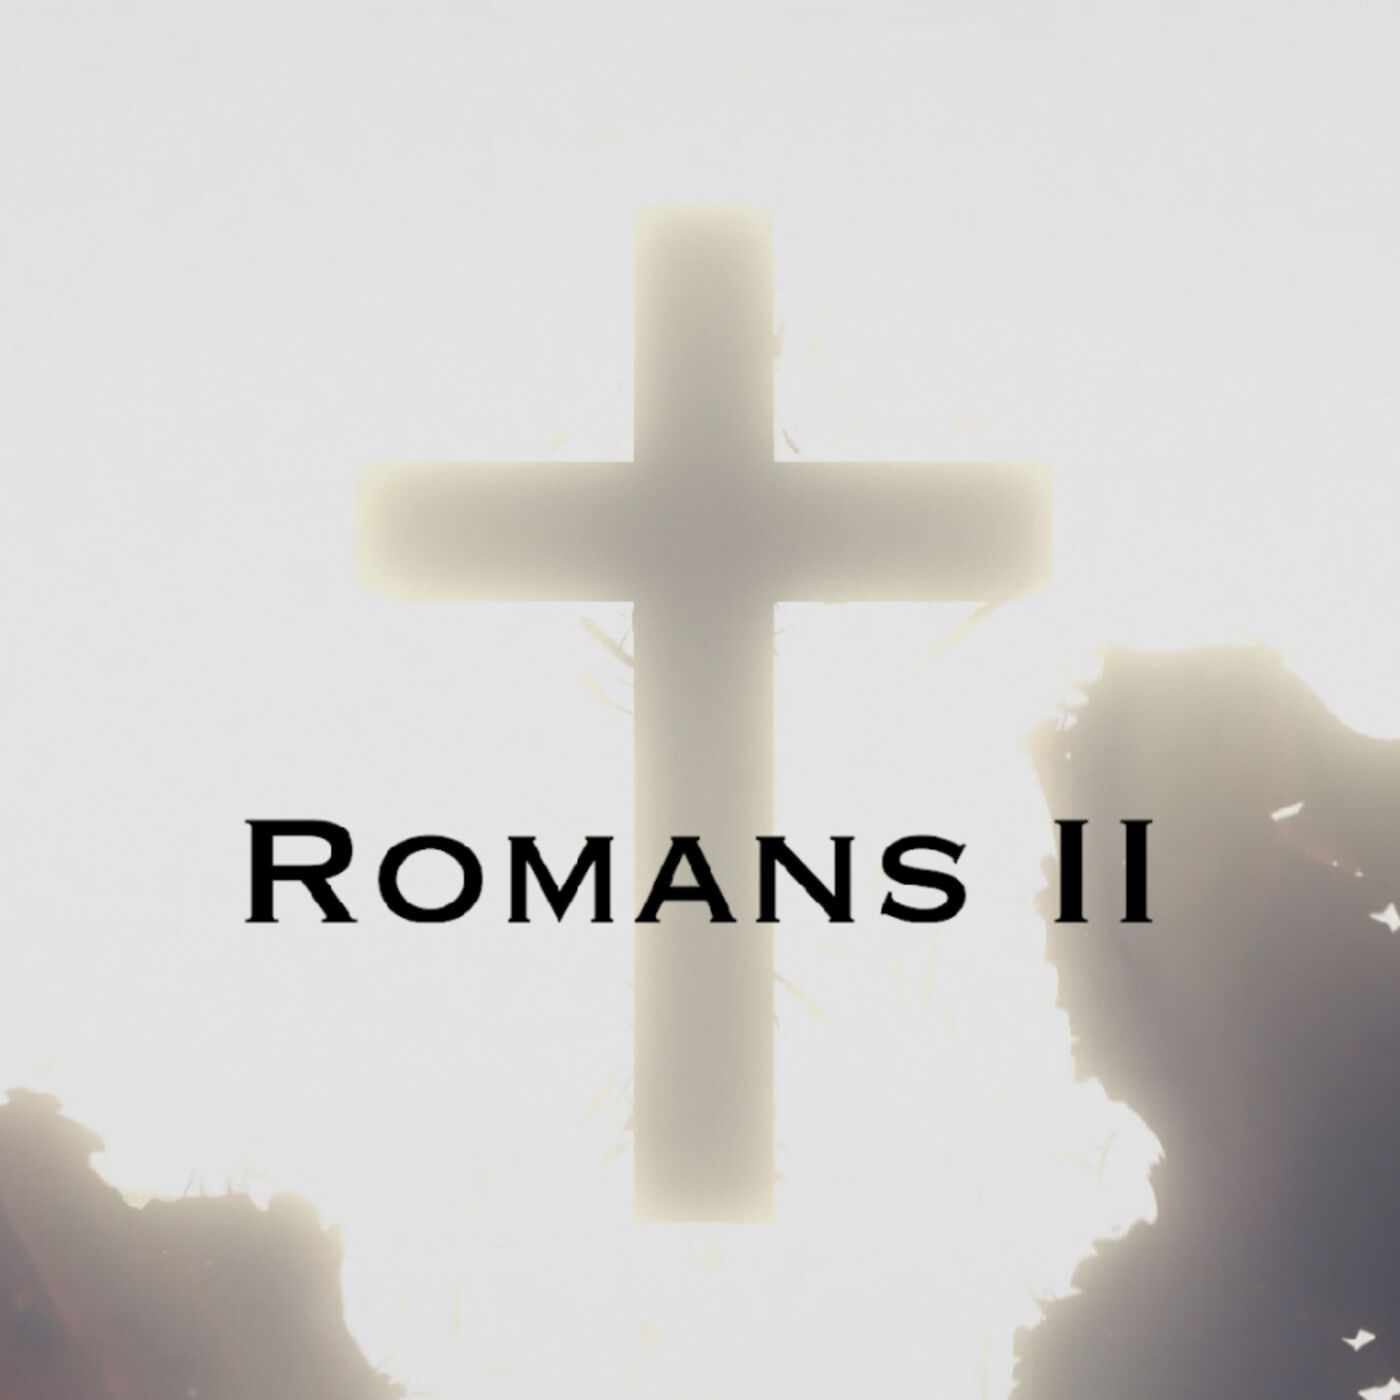 Romans 2:17-29 - The Change is Internal and Forever